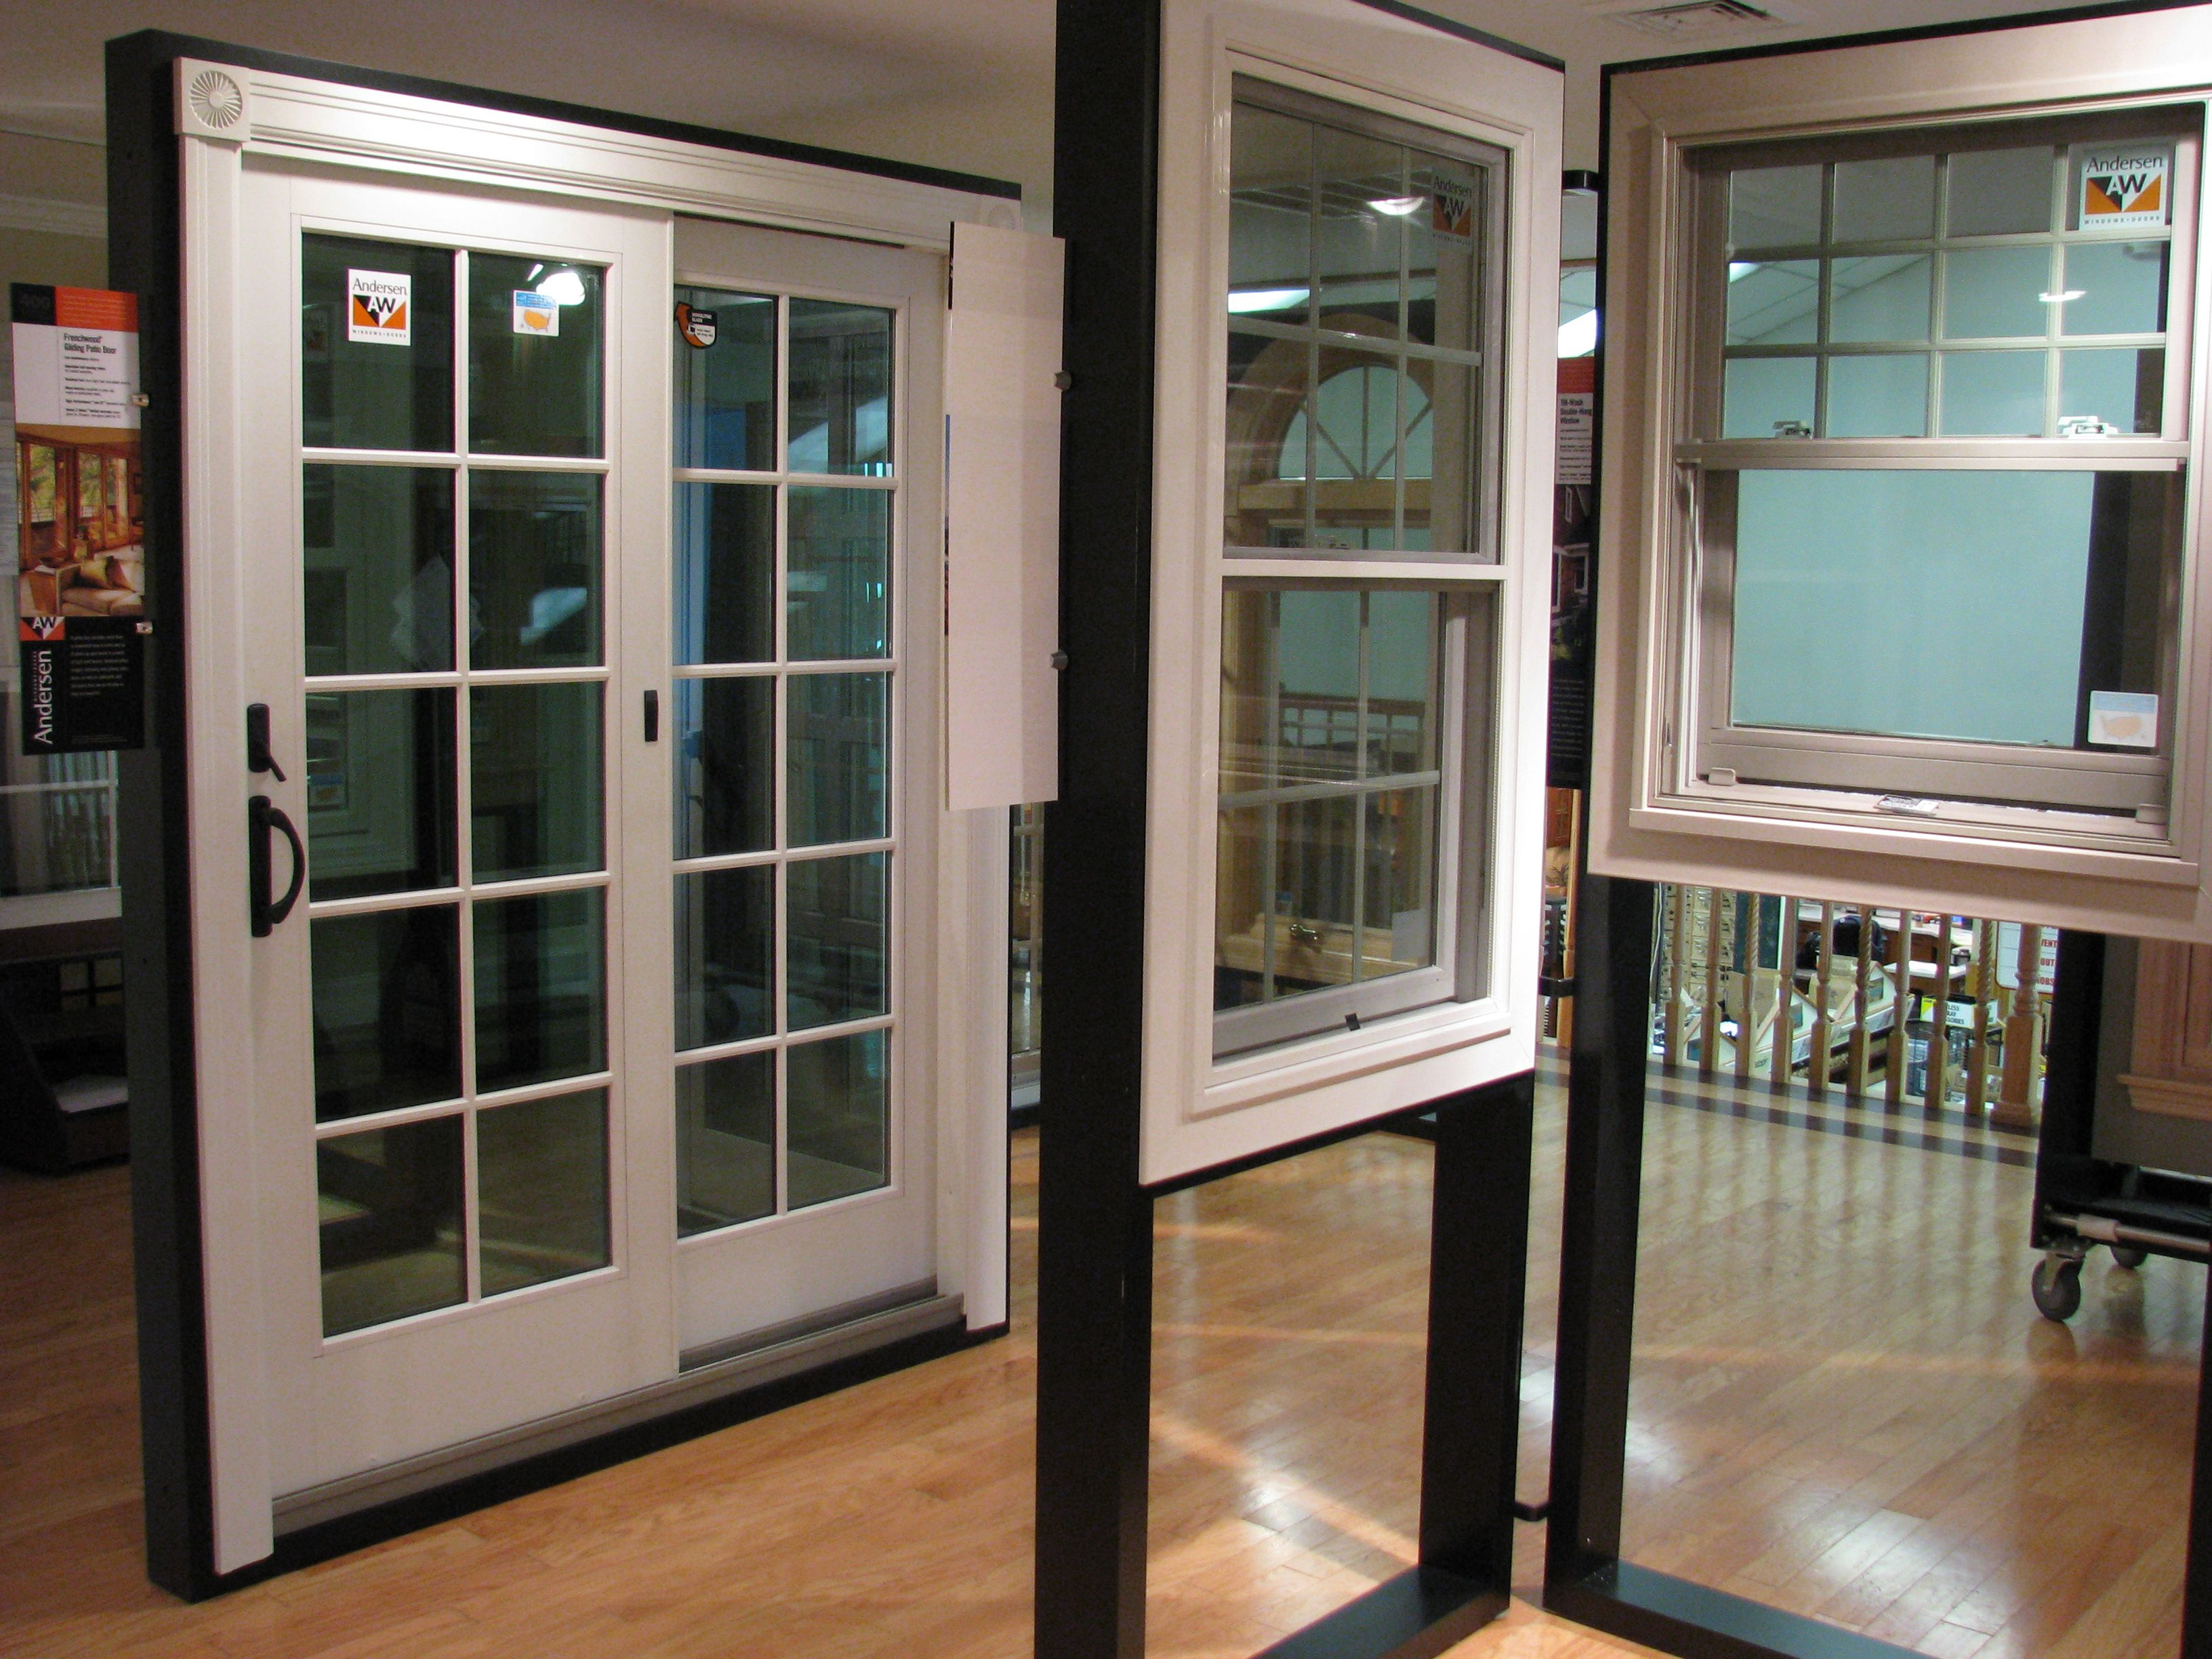 blinds of ma peabody realty bay mls estate verani to boulevard go real photo state